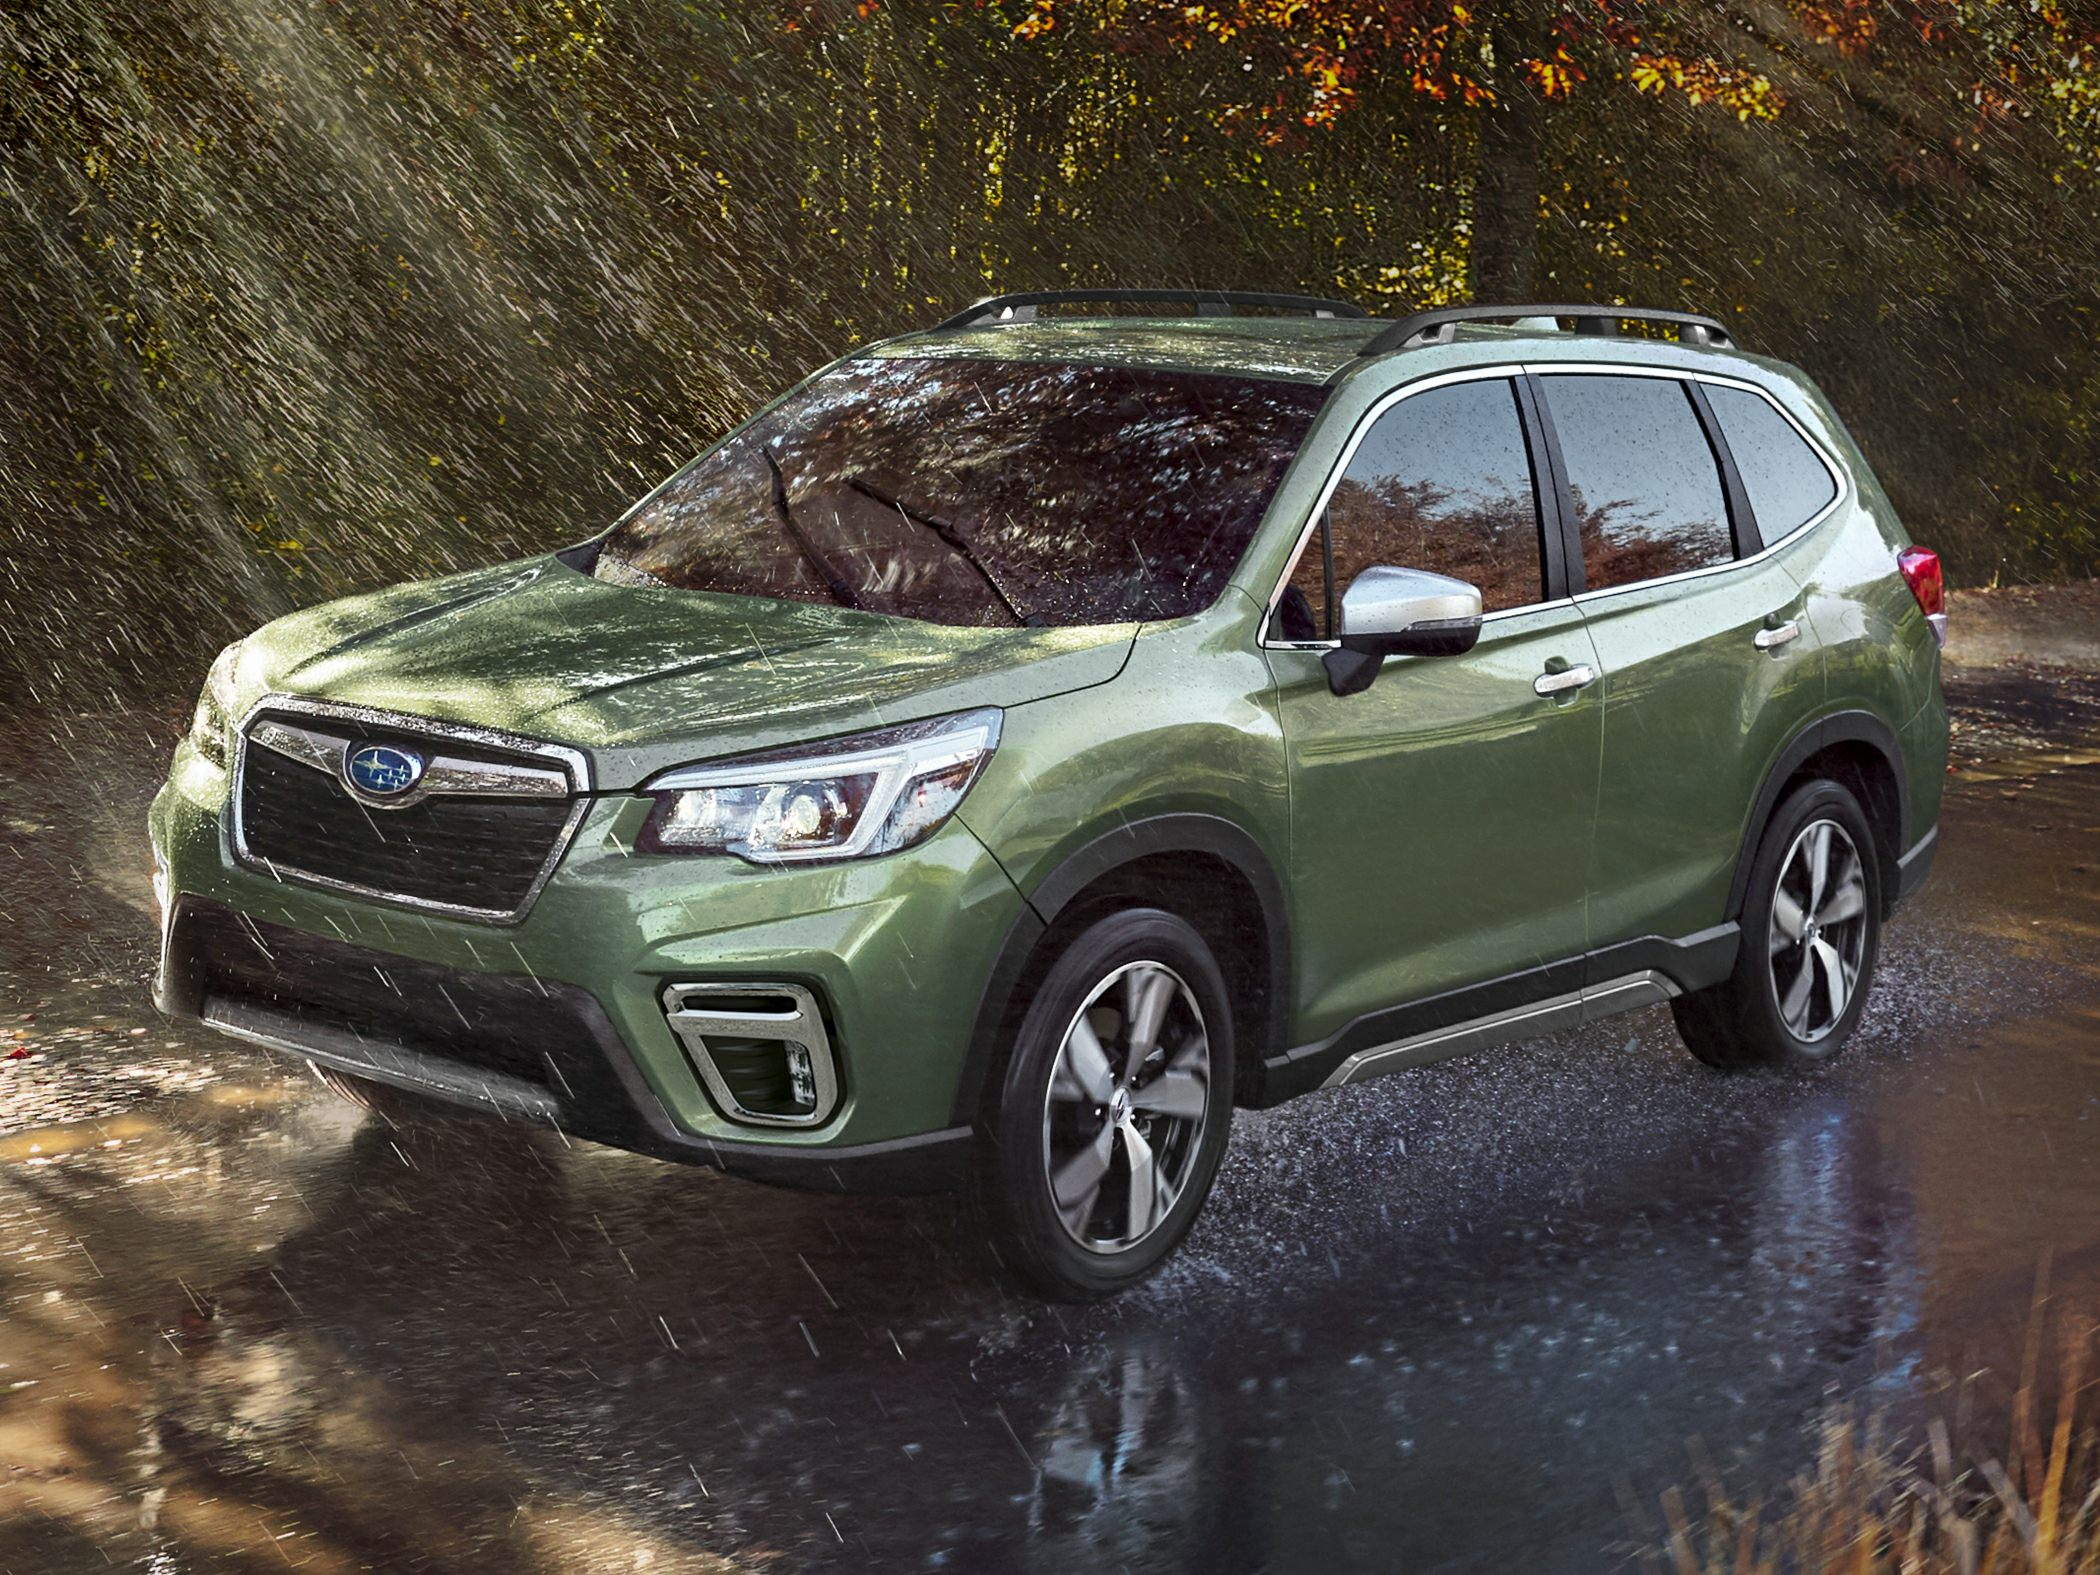 2019 Subaru Forester Specs and Prices